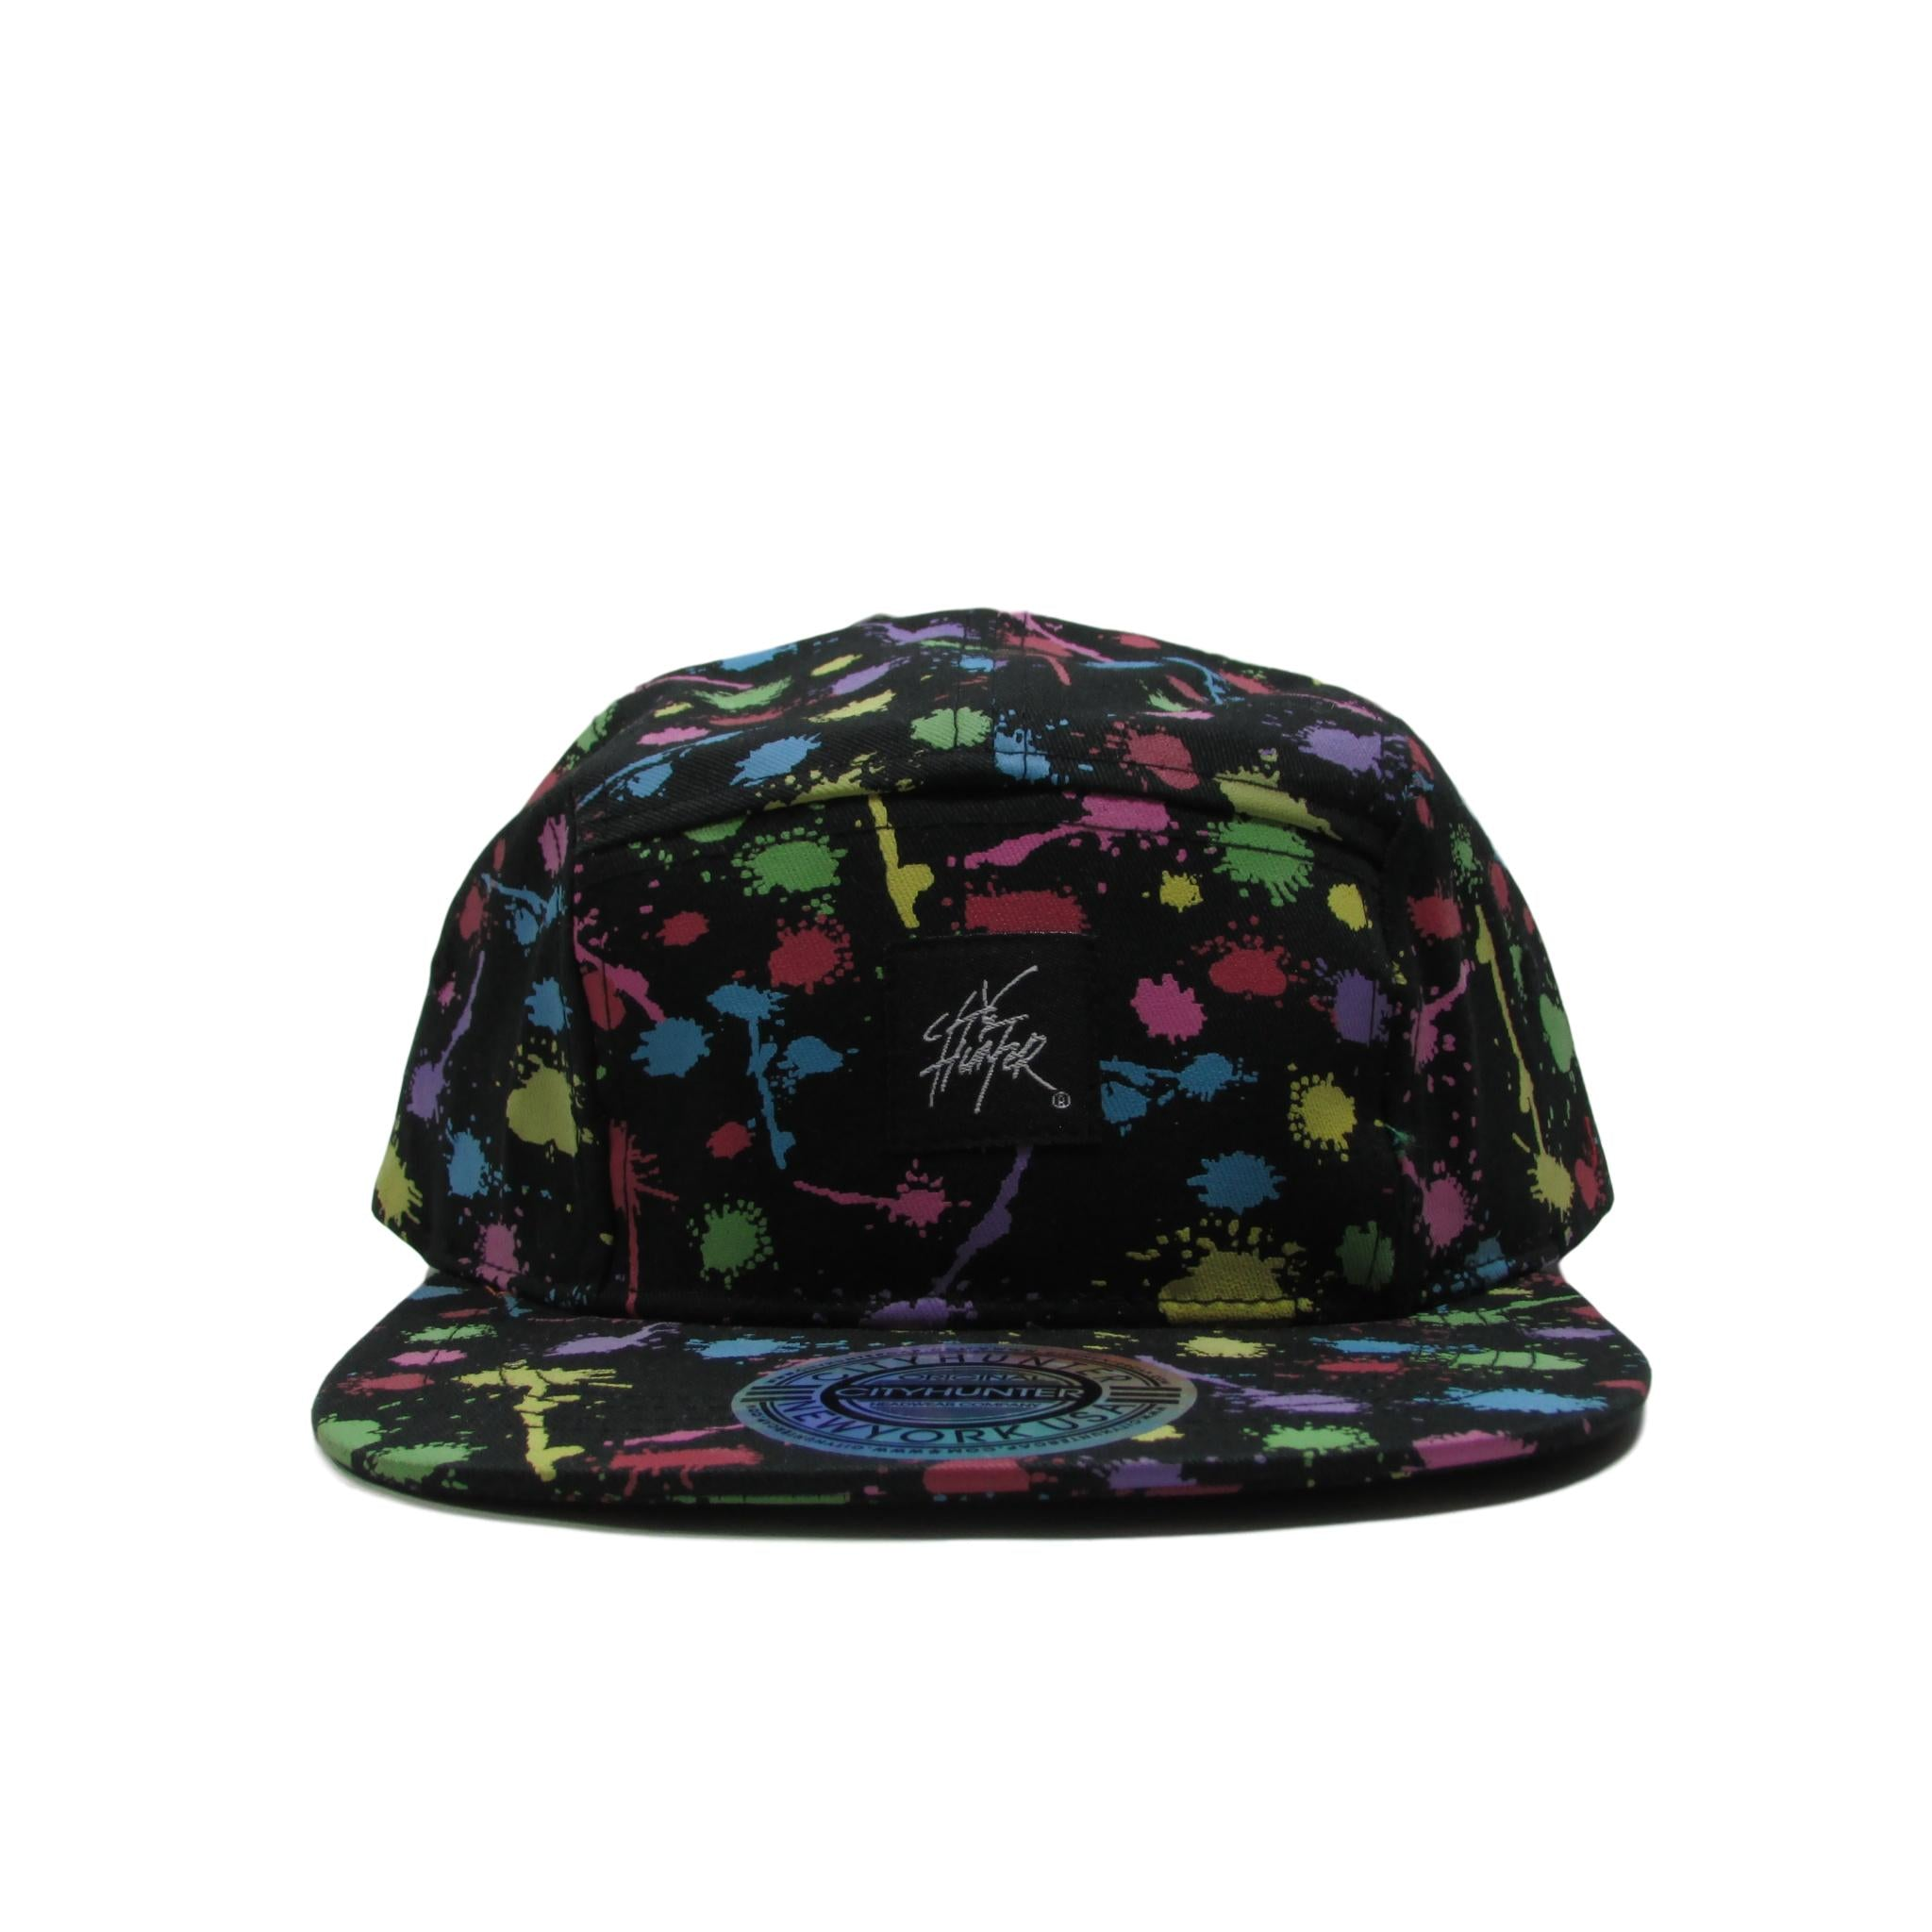 City Hunter Paint Ball Splash Leather 5 Panel Strapback Hat